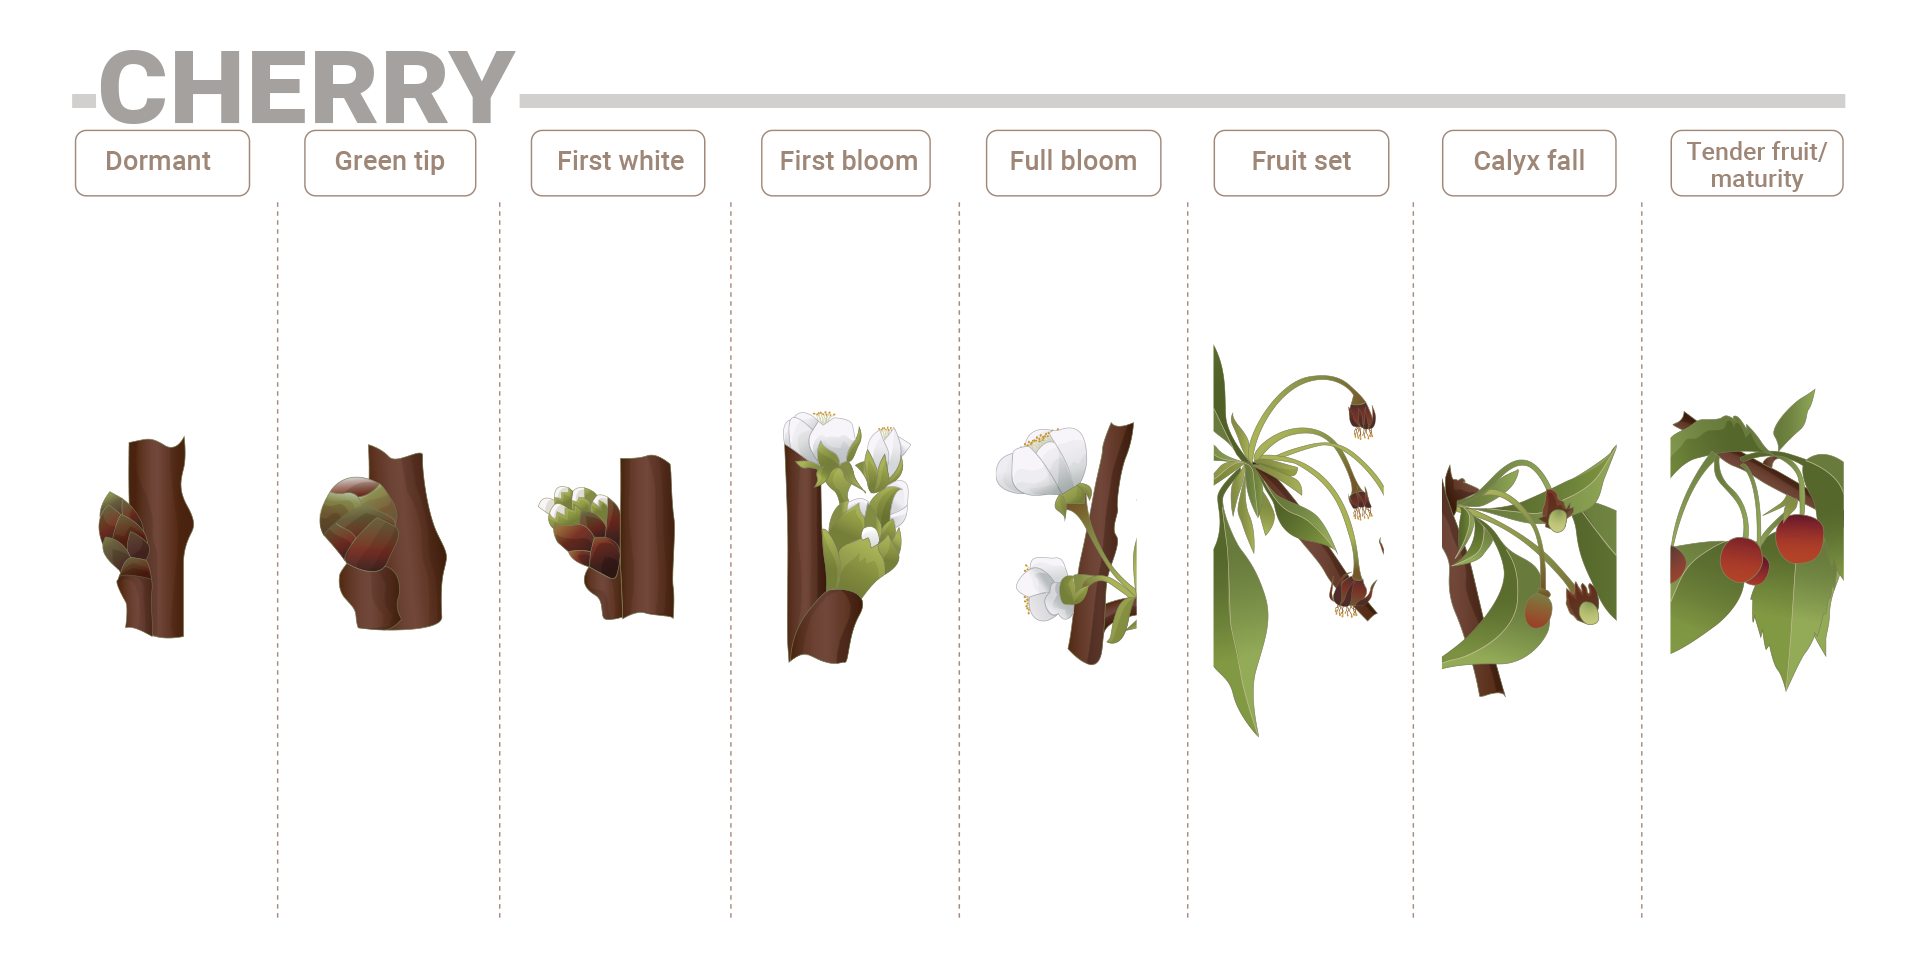 Cherry phenological phases